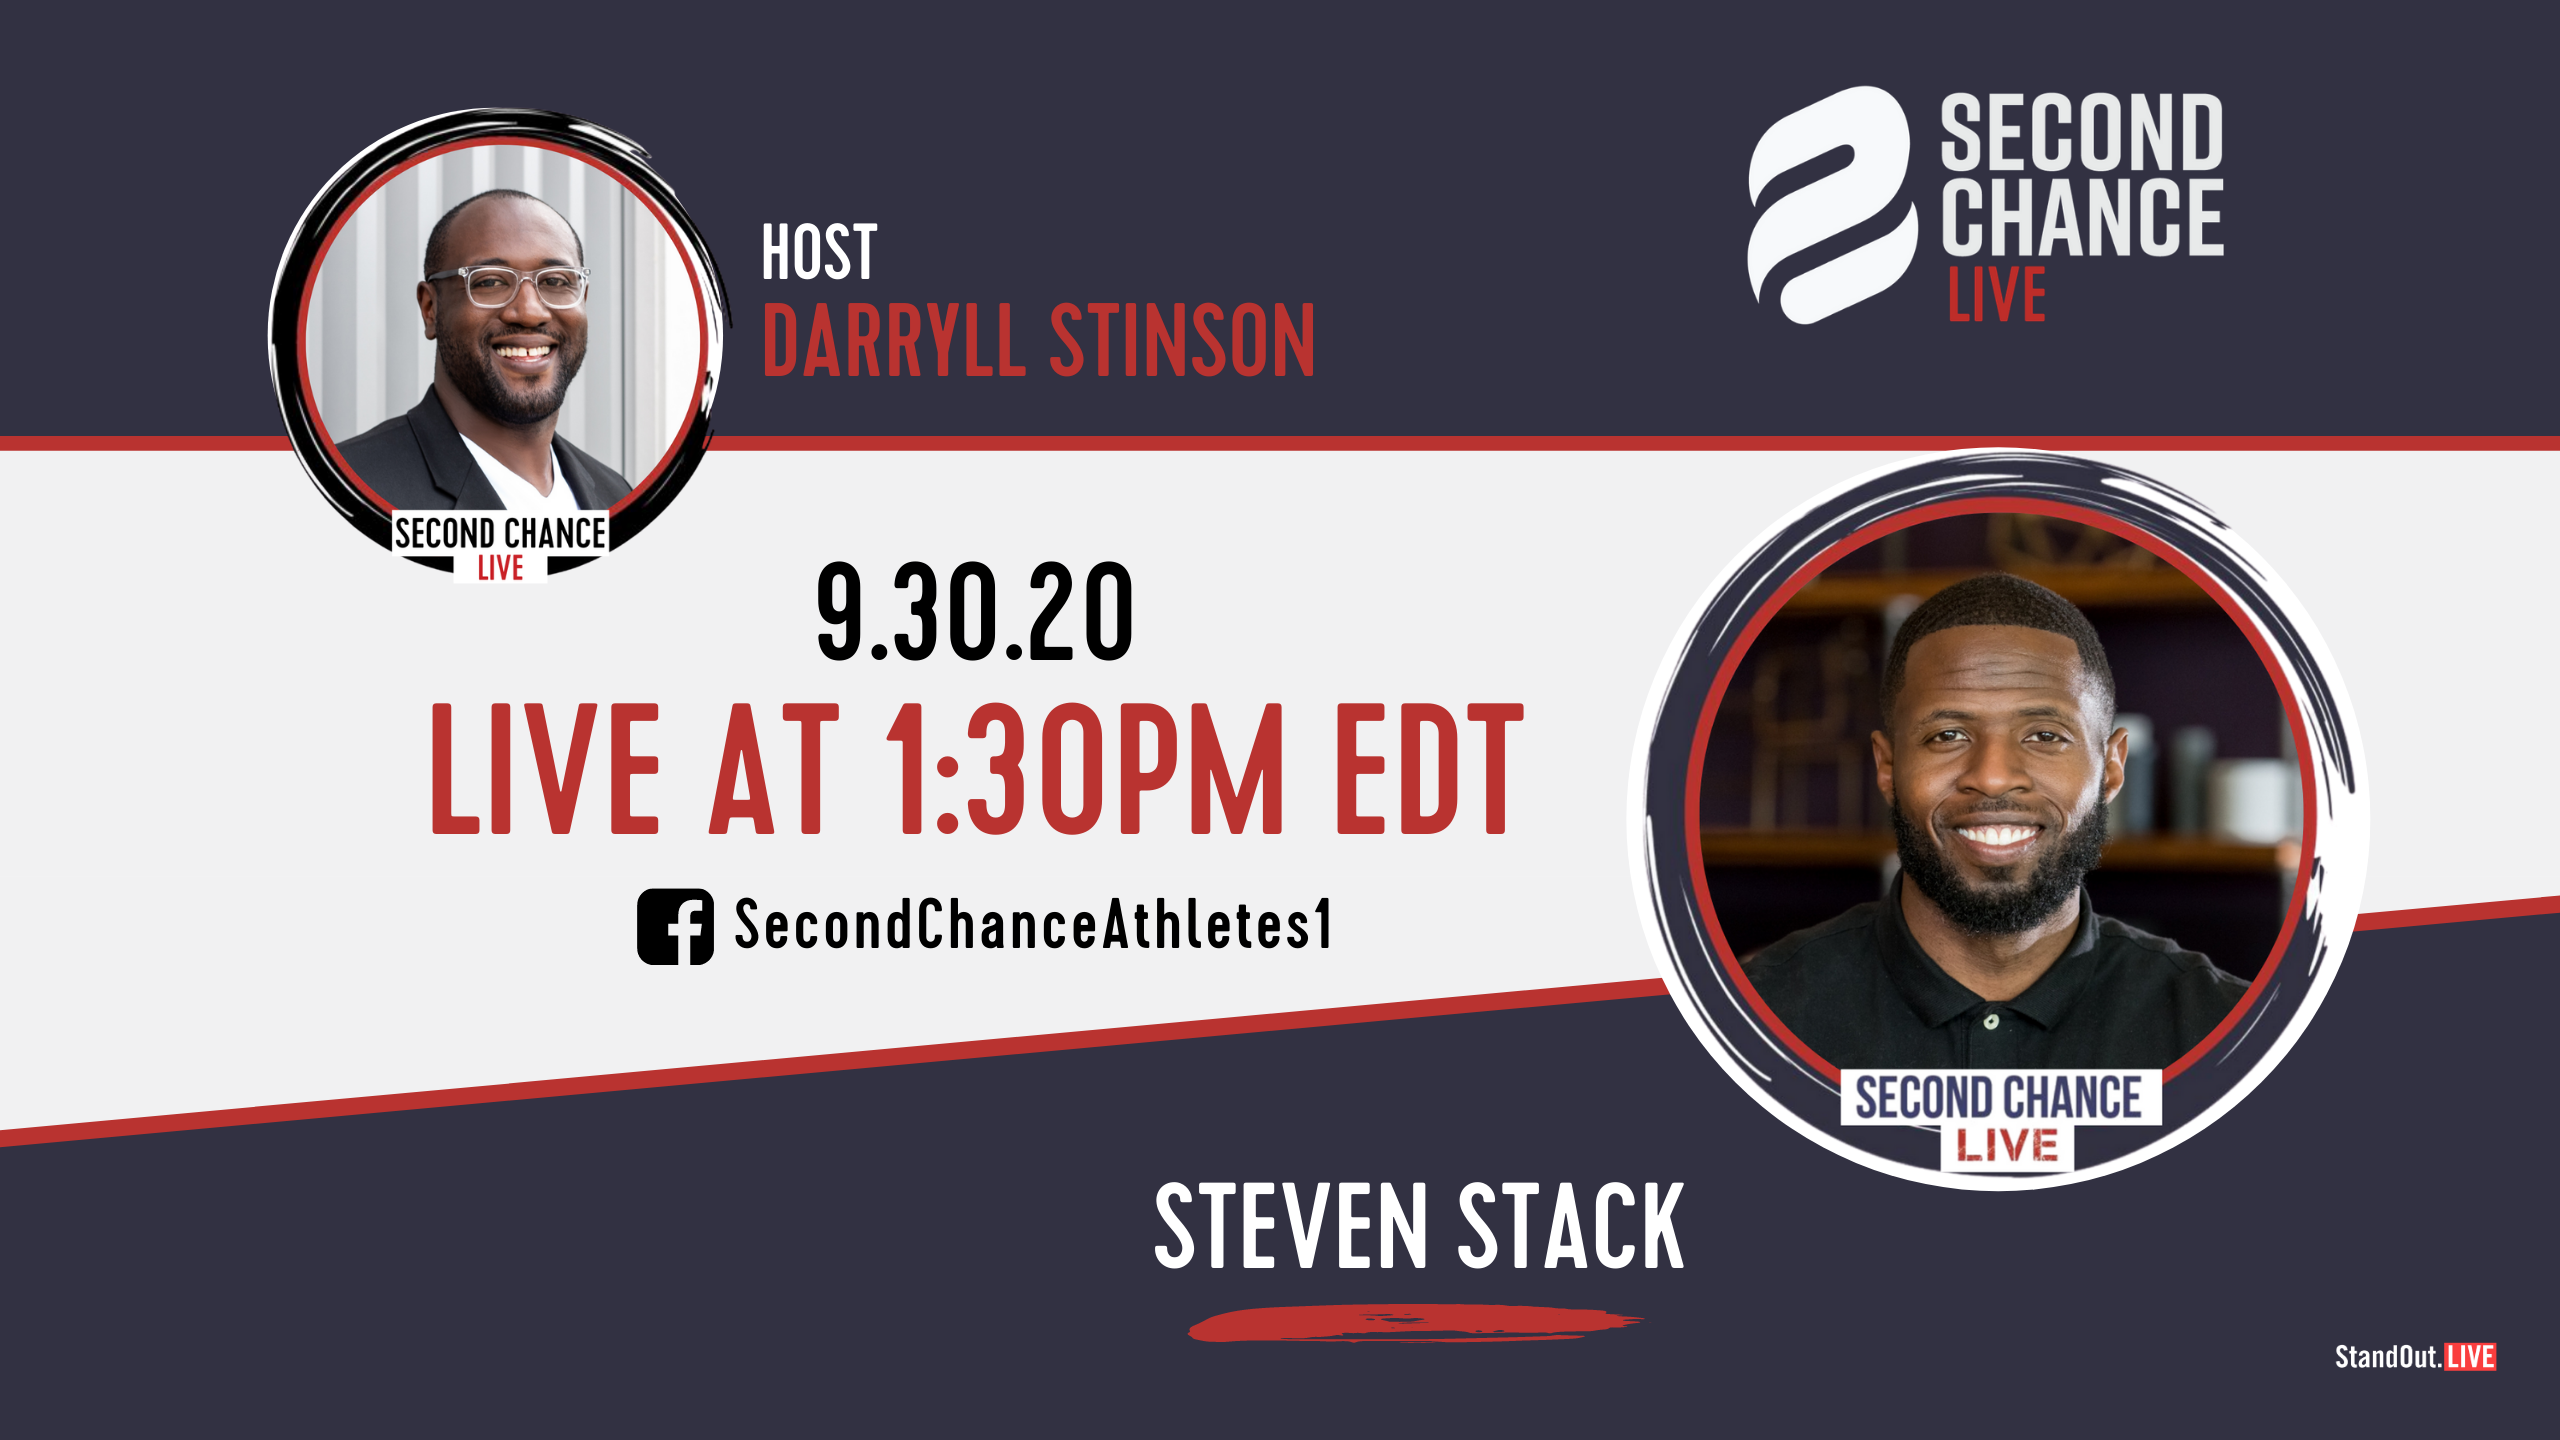 Second Chance LIVE -with Steven Stack